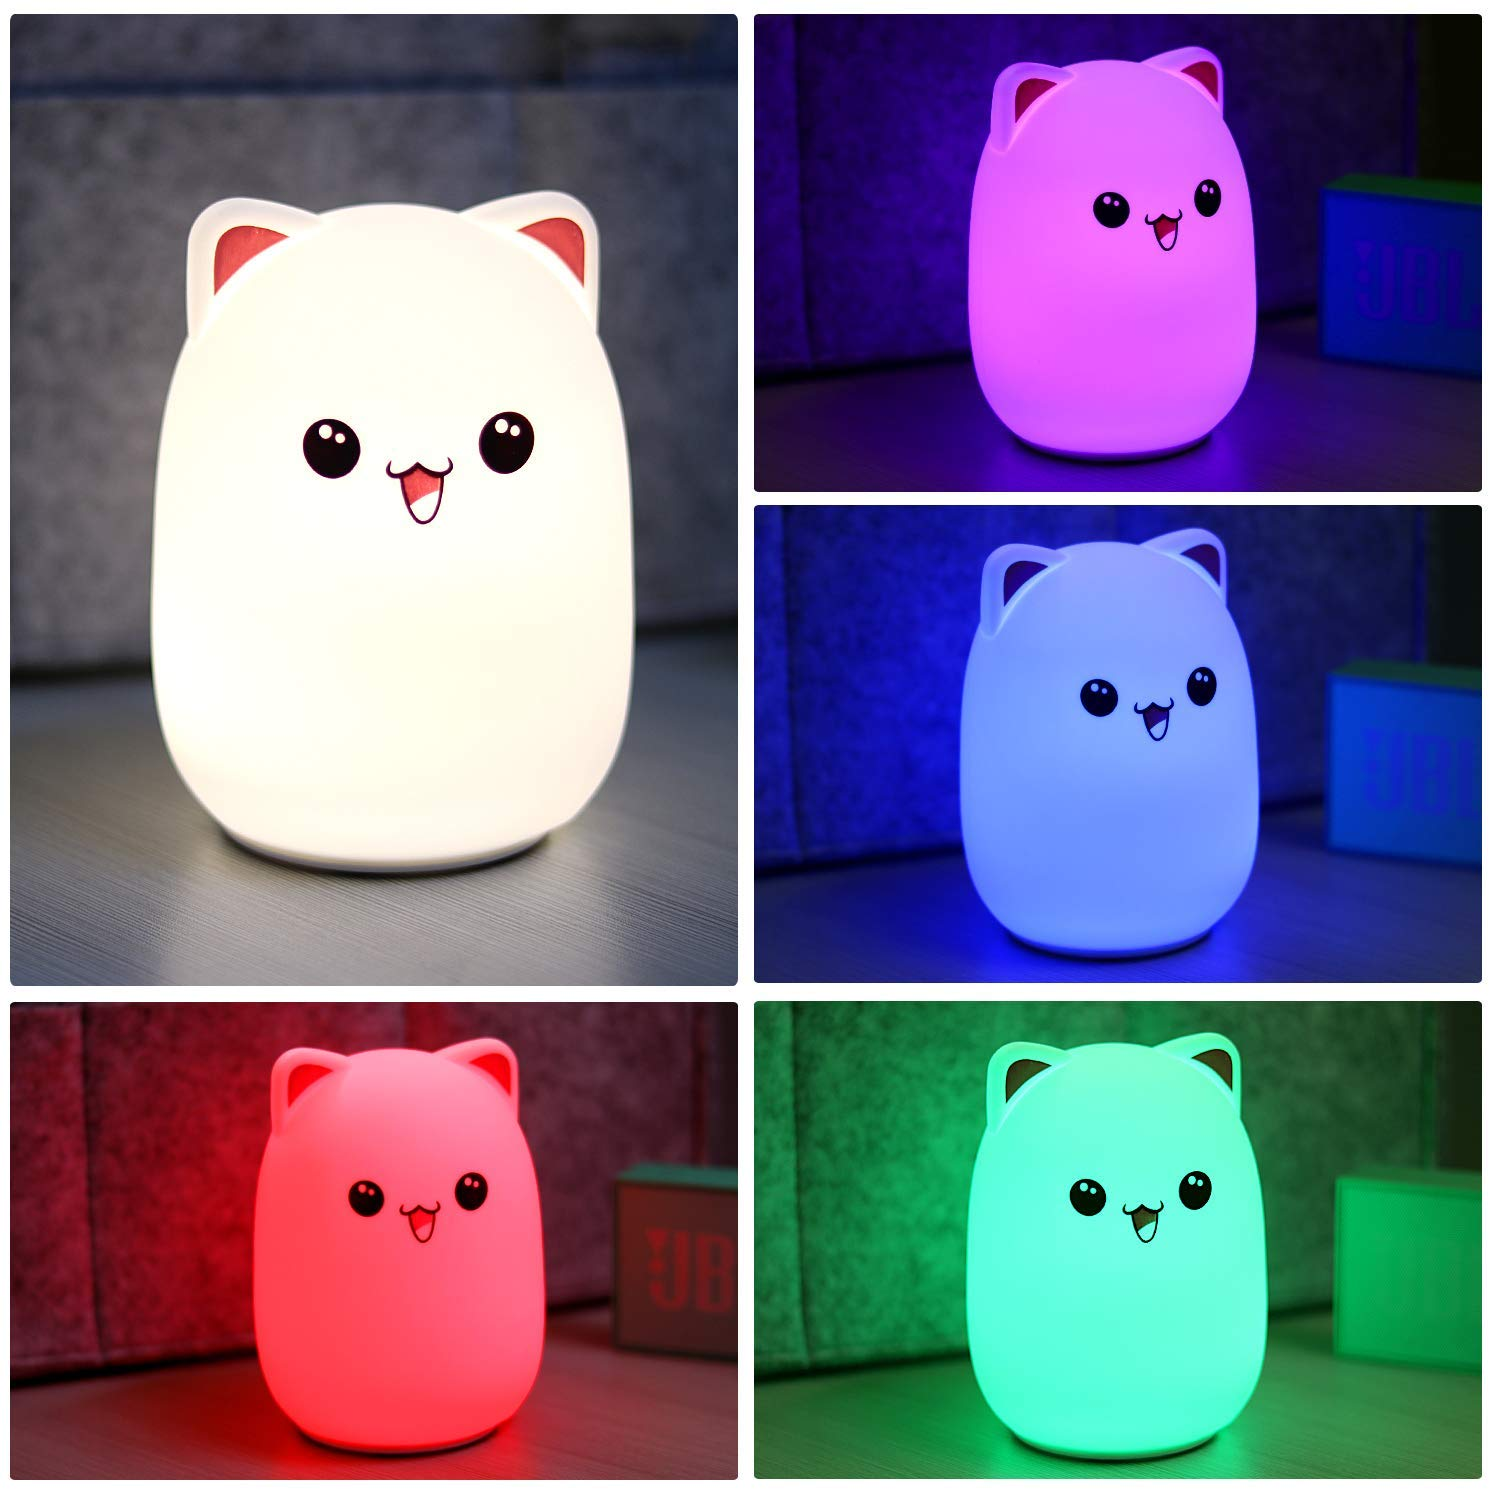 Safe Soft Silicone for Baby Tap Control Bedside Lamp for Breastfeeding Eye Caring LED Cute Cat LED Nursery Night Light for Kids USB Rechargeable,6 Hours Runtime- 5 Color Mode PowerBay